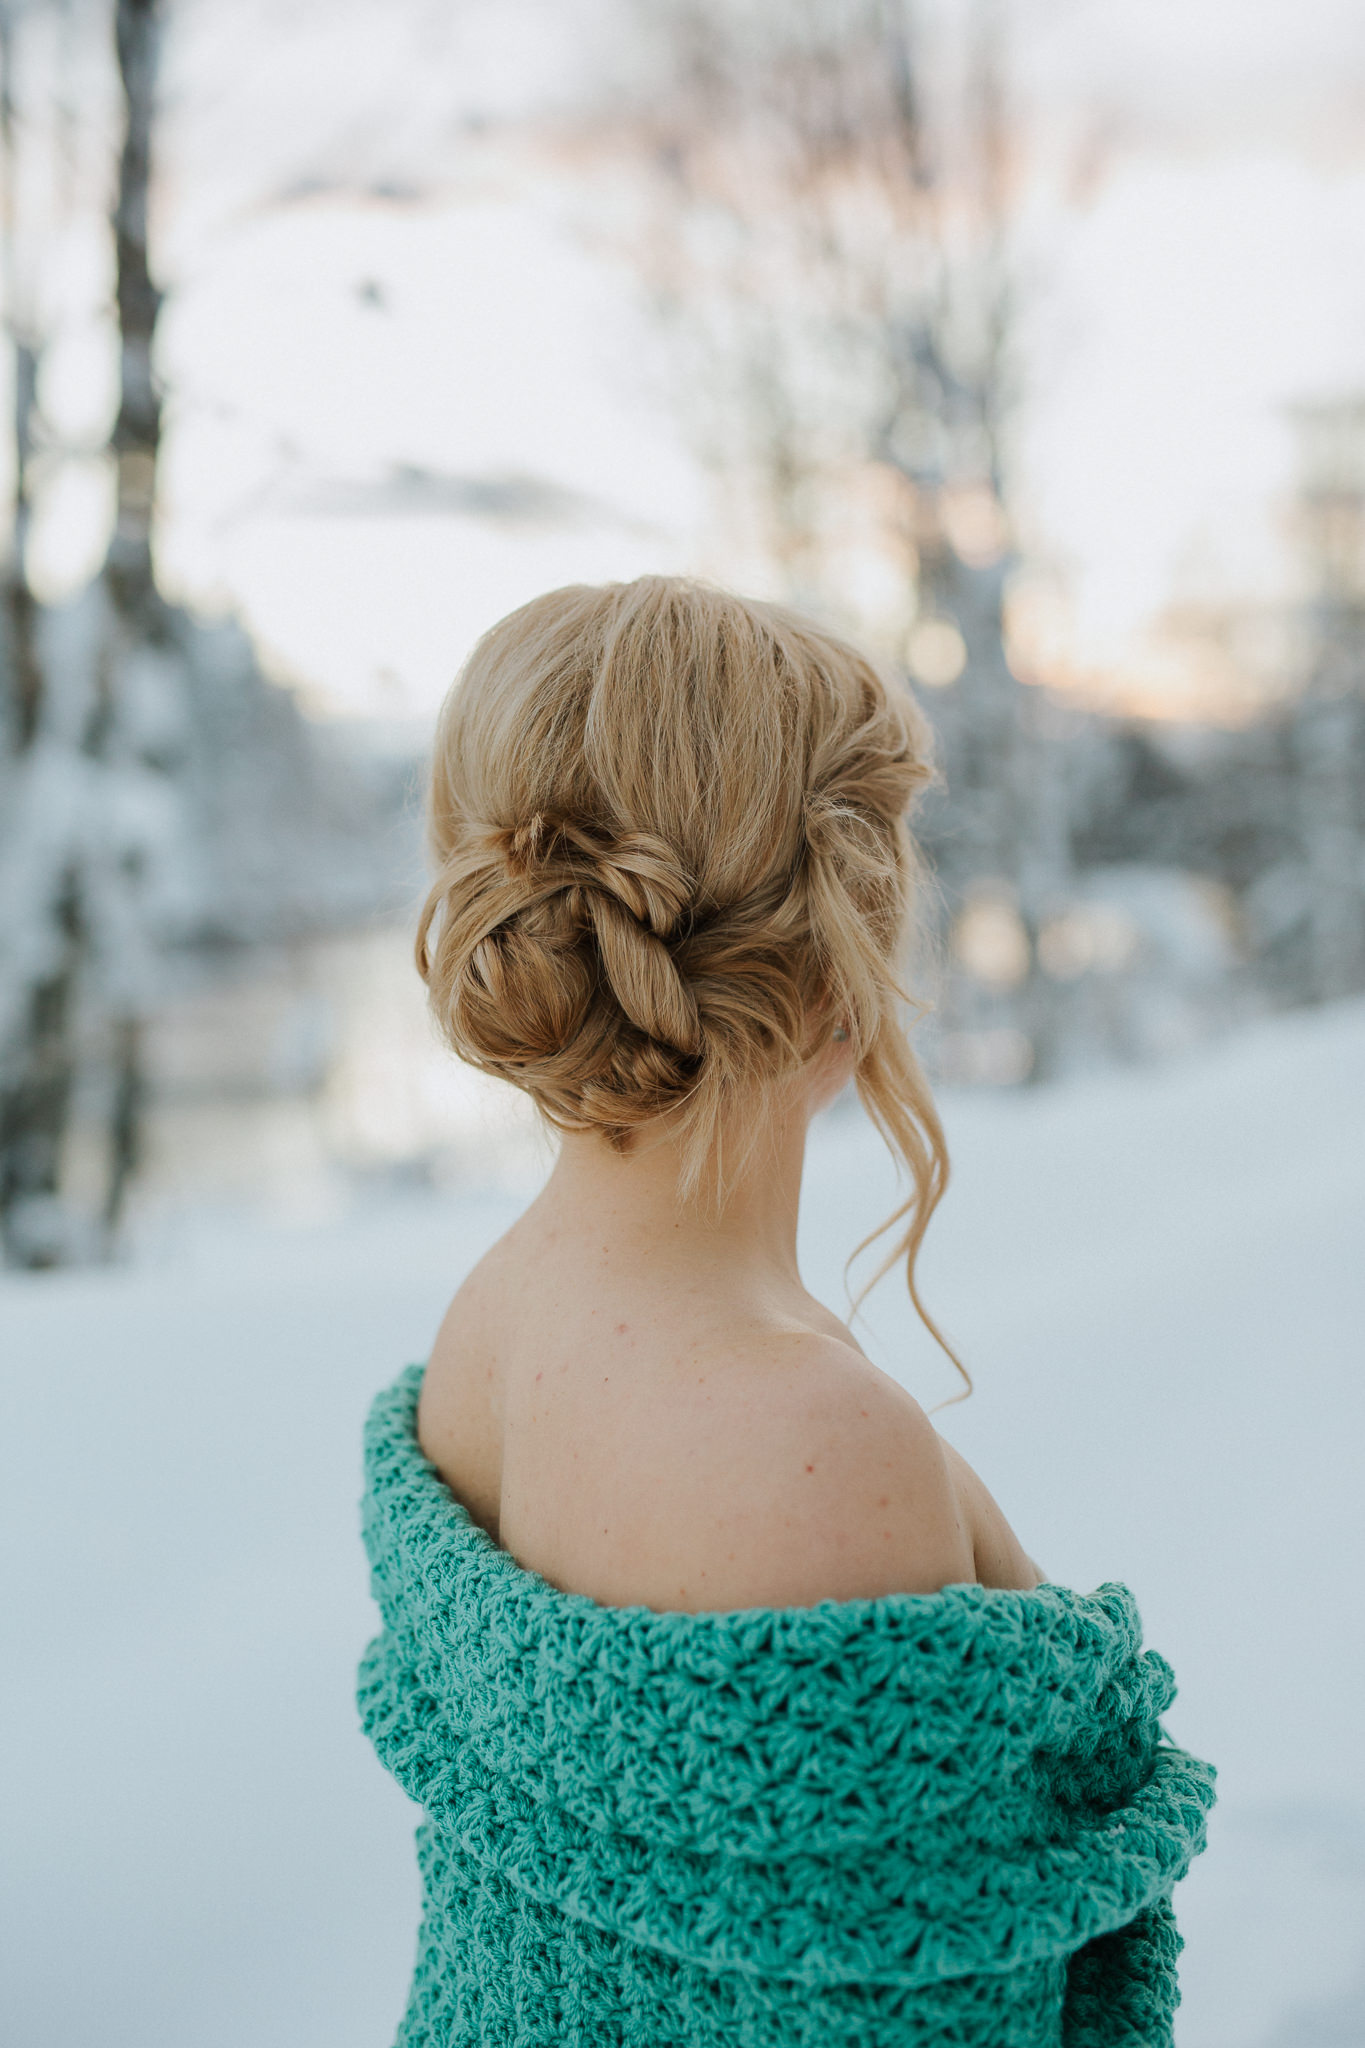 winter wedding photos.jpg